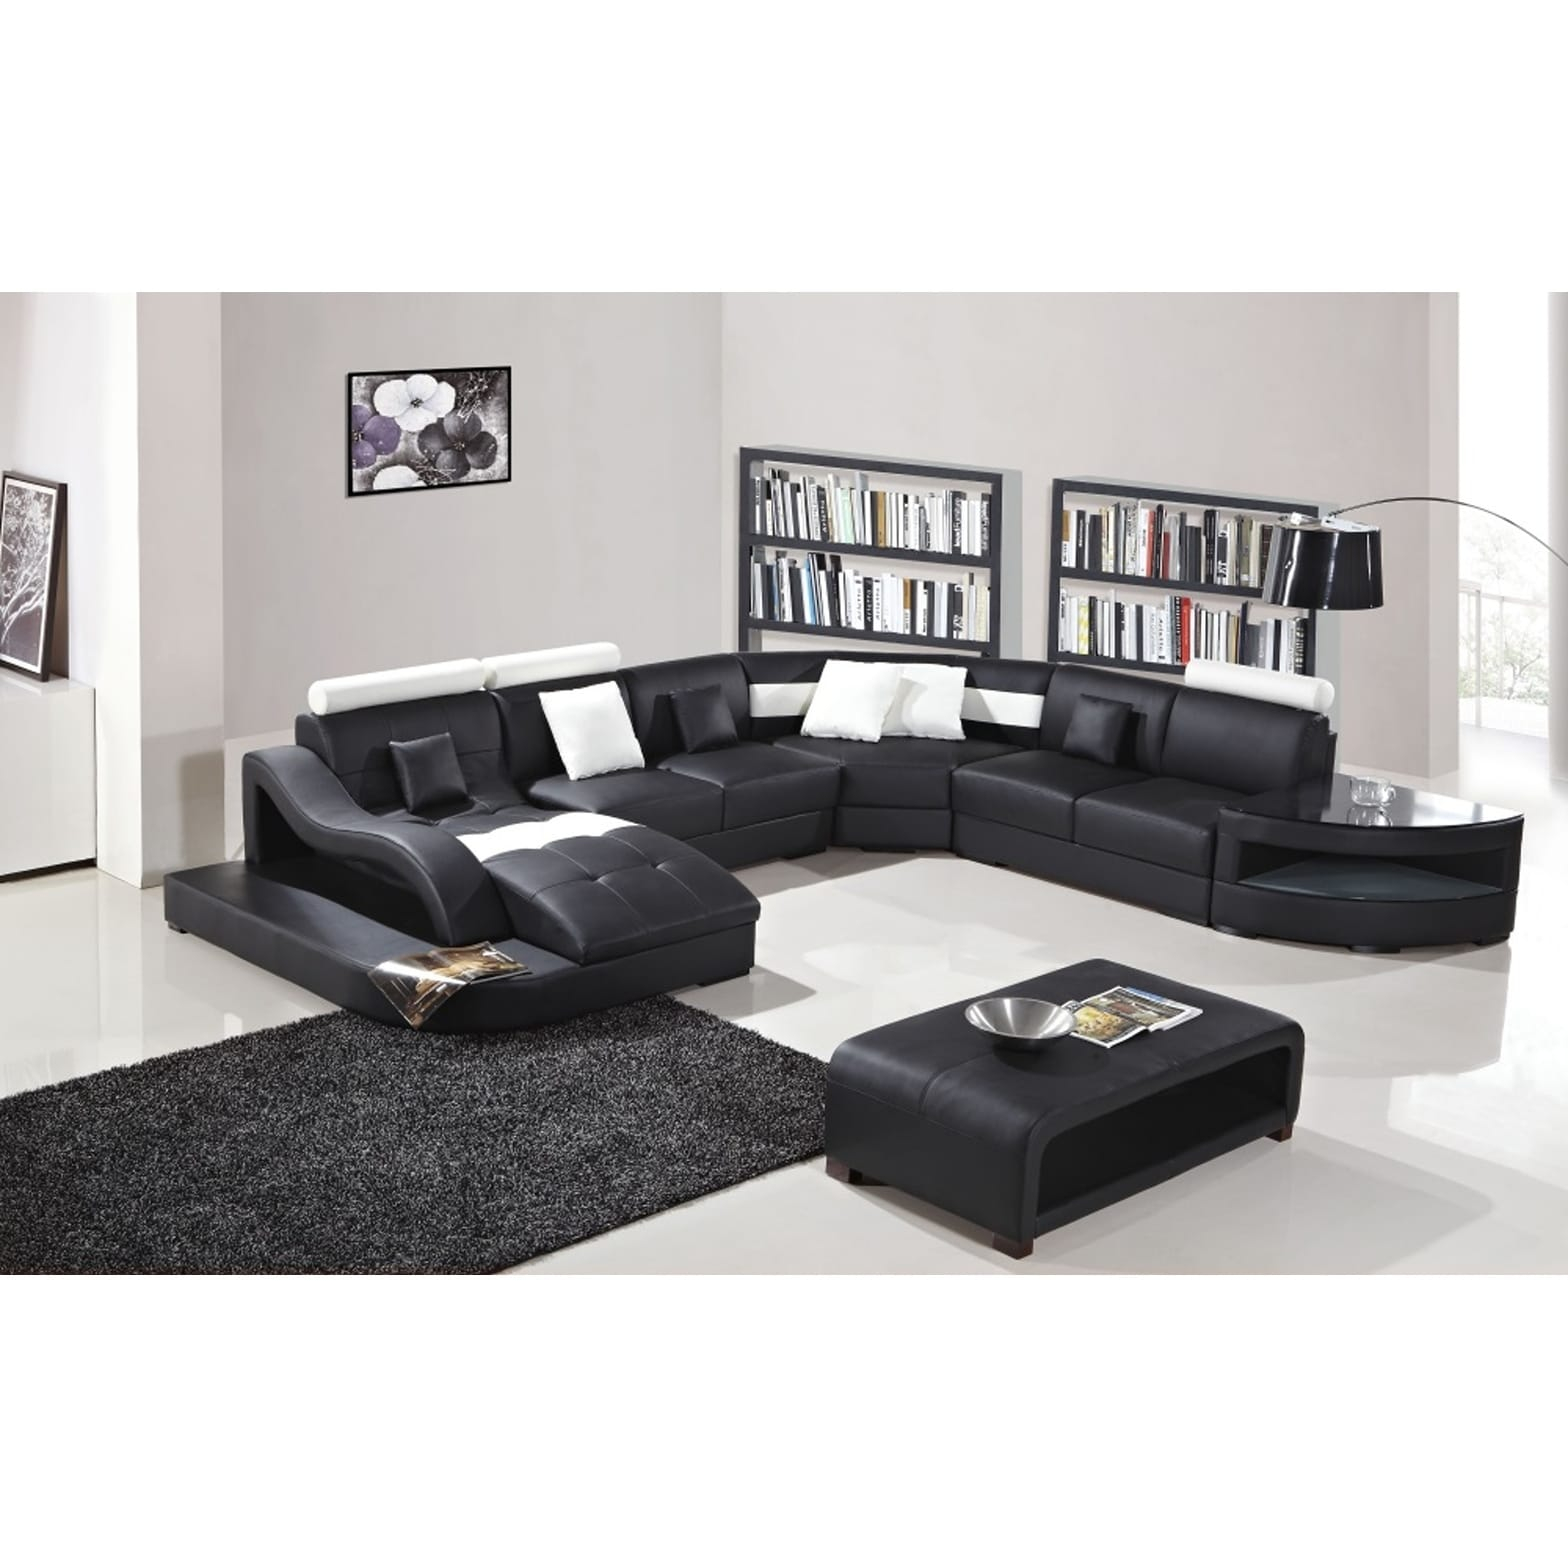 Black And White Modern Contemporary Real Leather Sectional Living Room Set With Chaise Lounge Storage Shelves And Coffee Table pertaining to White Leather Living Room Sets